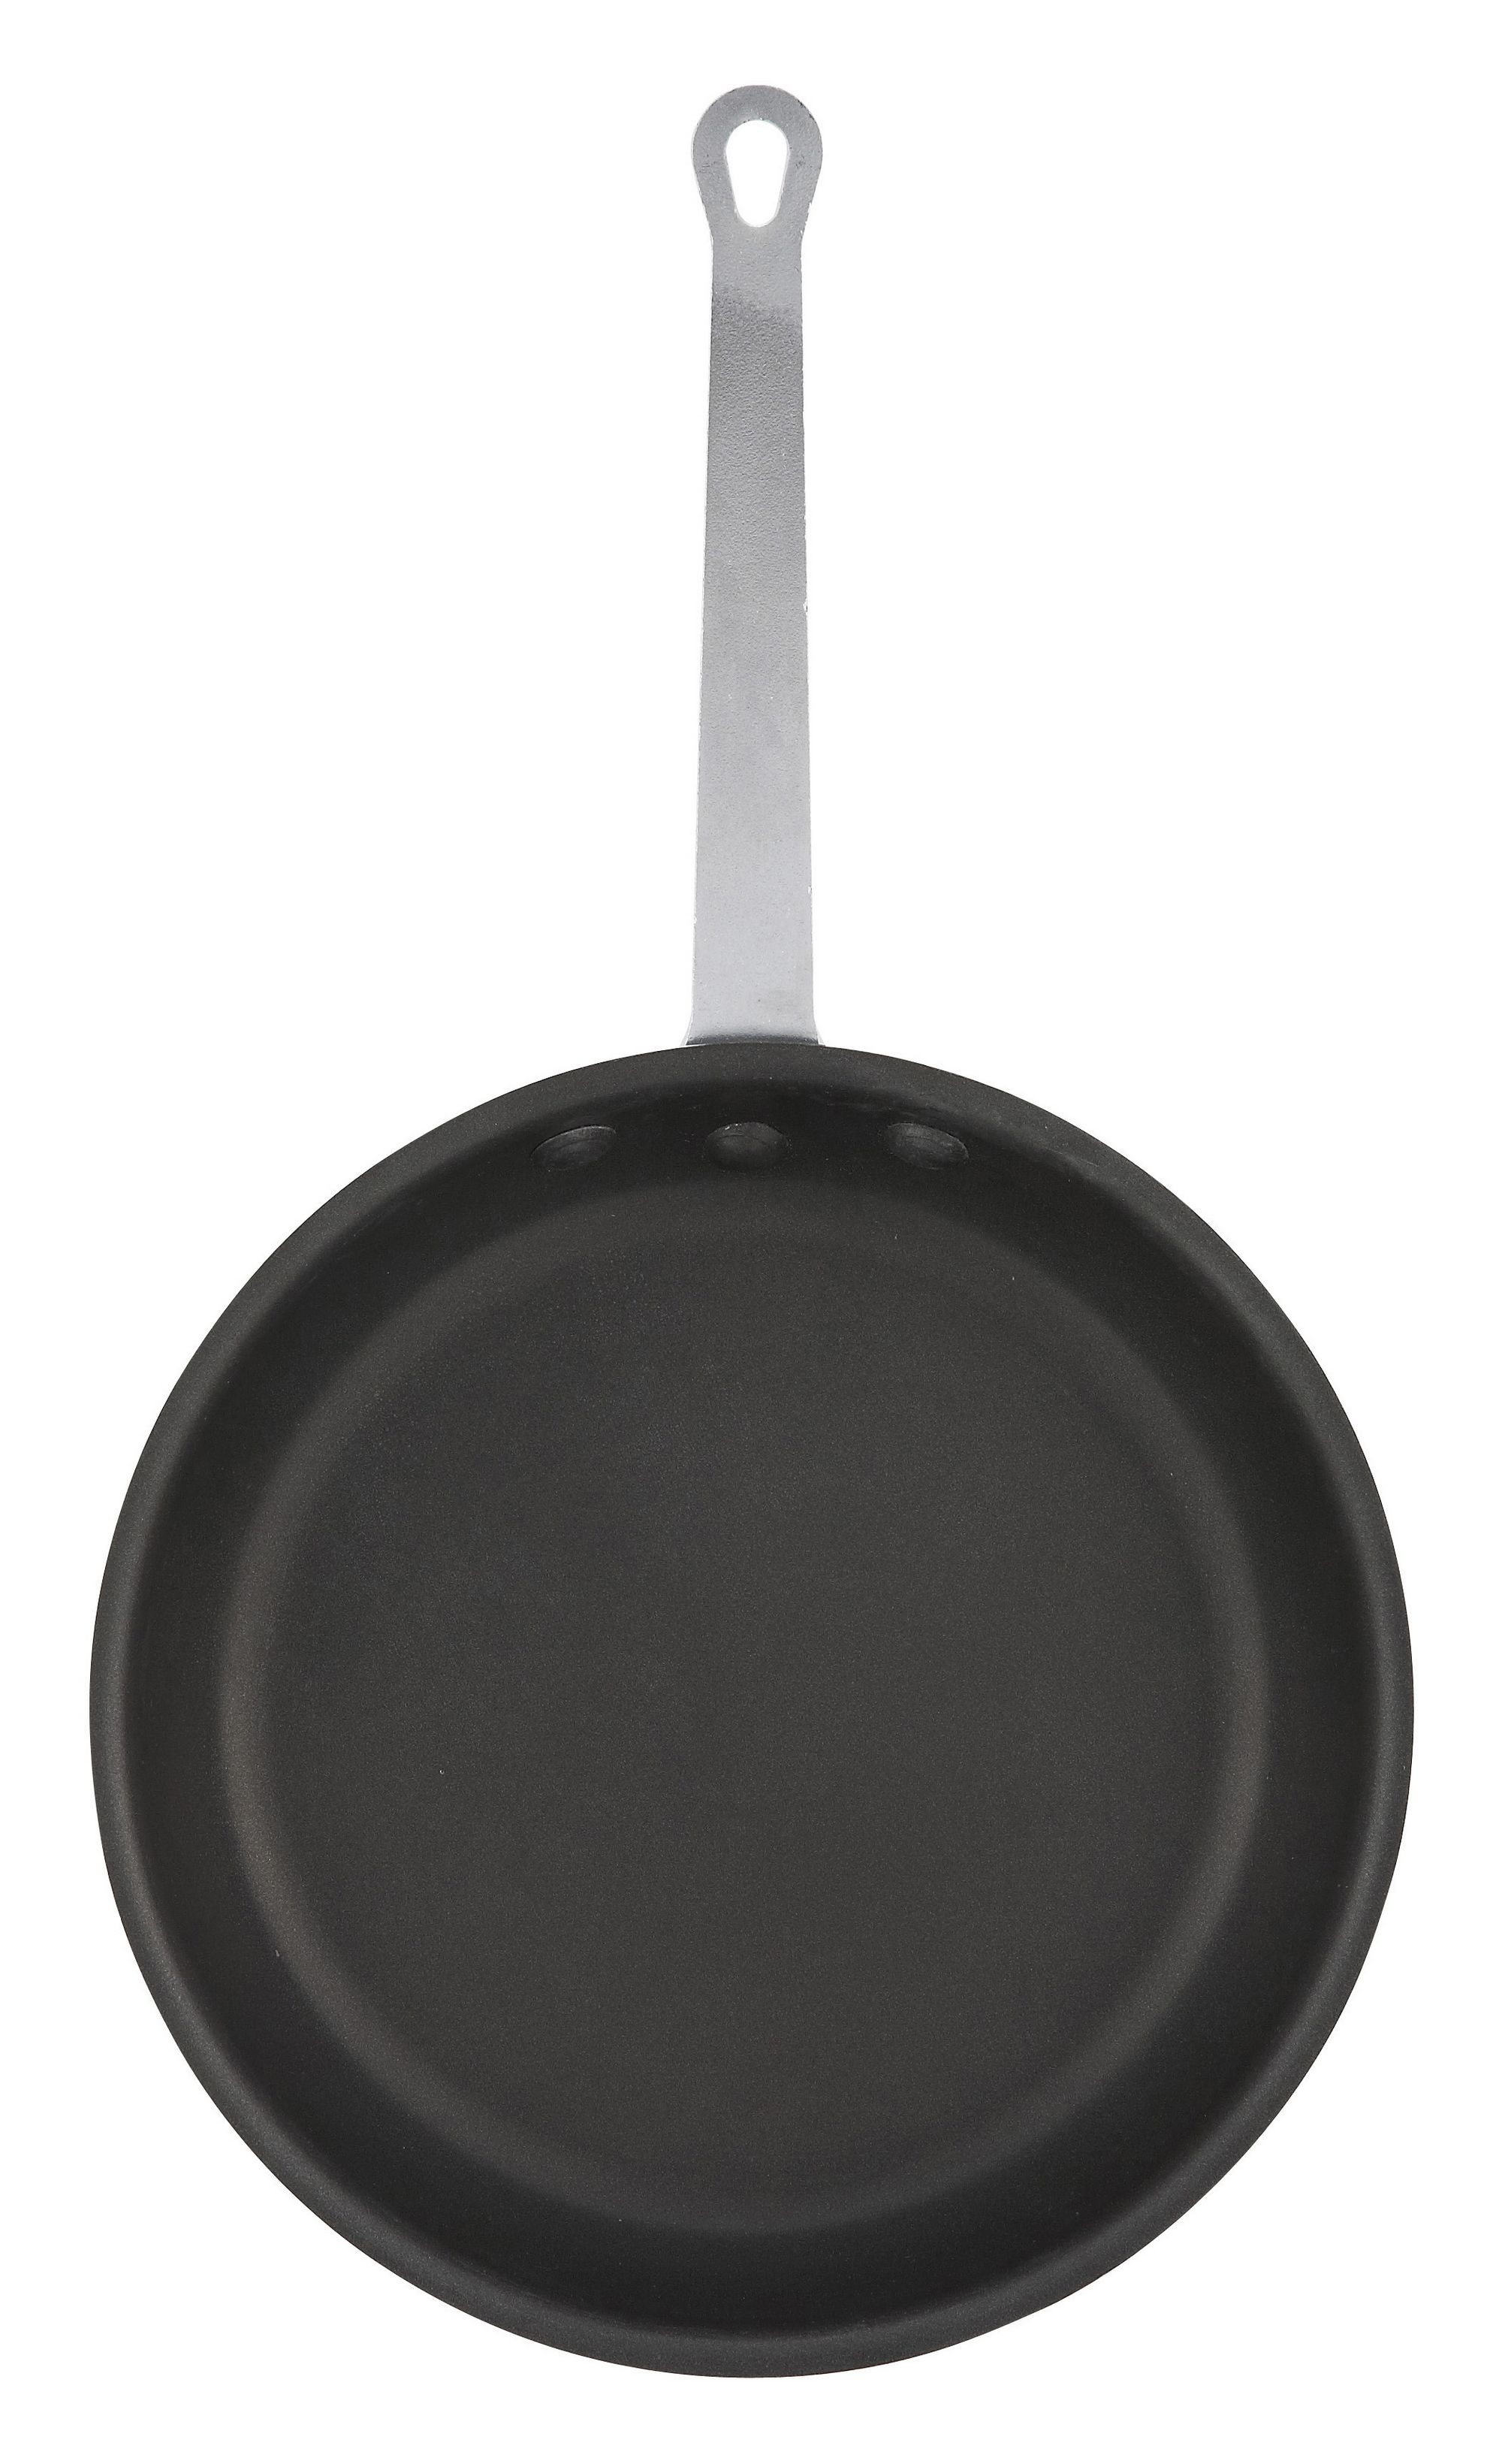 8 3.5 mm Aluminum Non-Stick Fry Pan